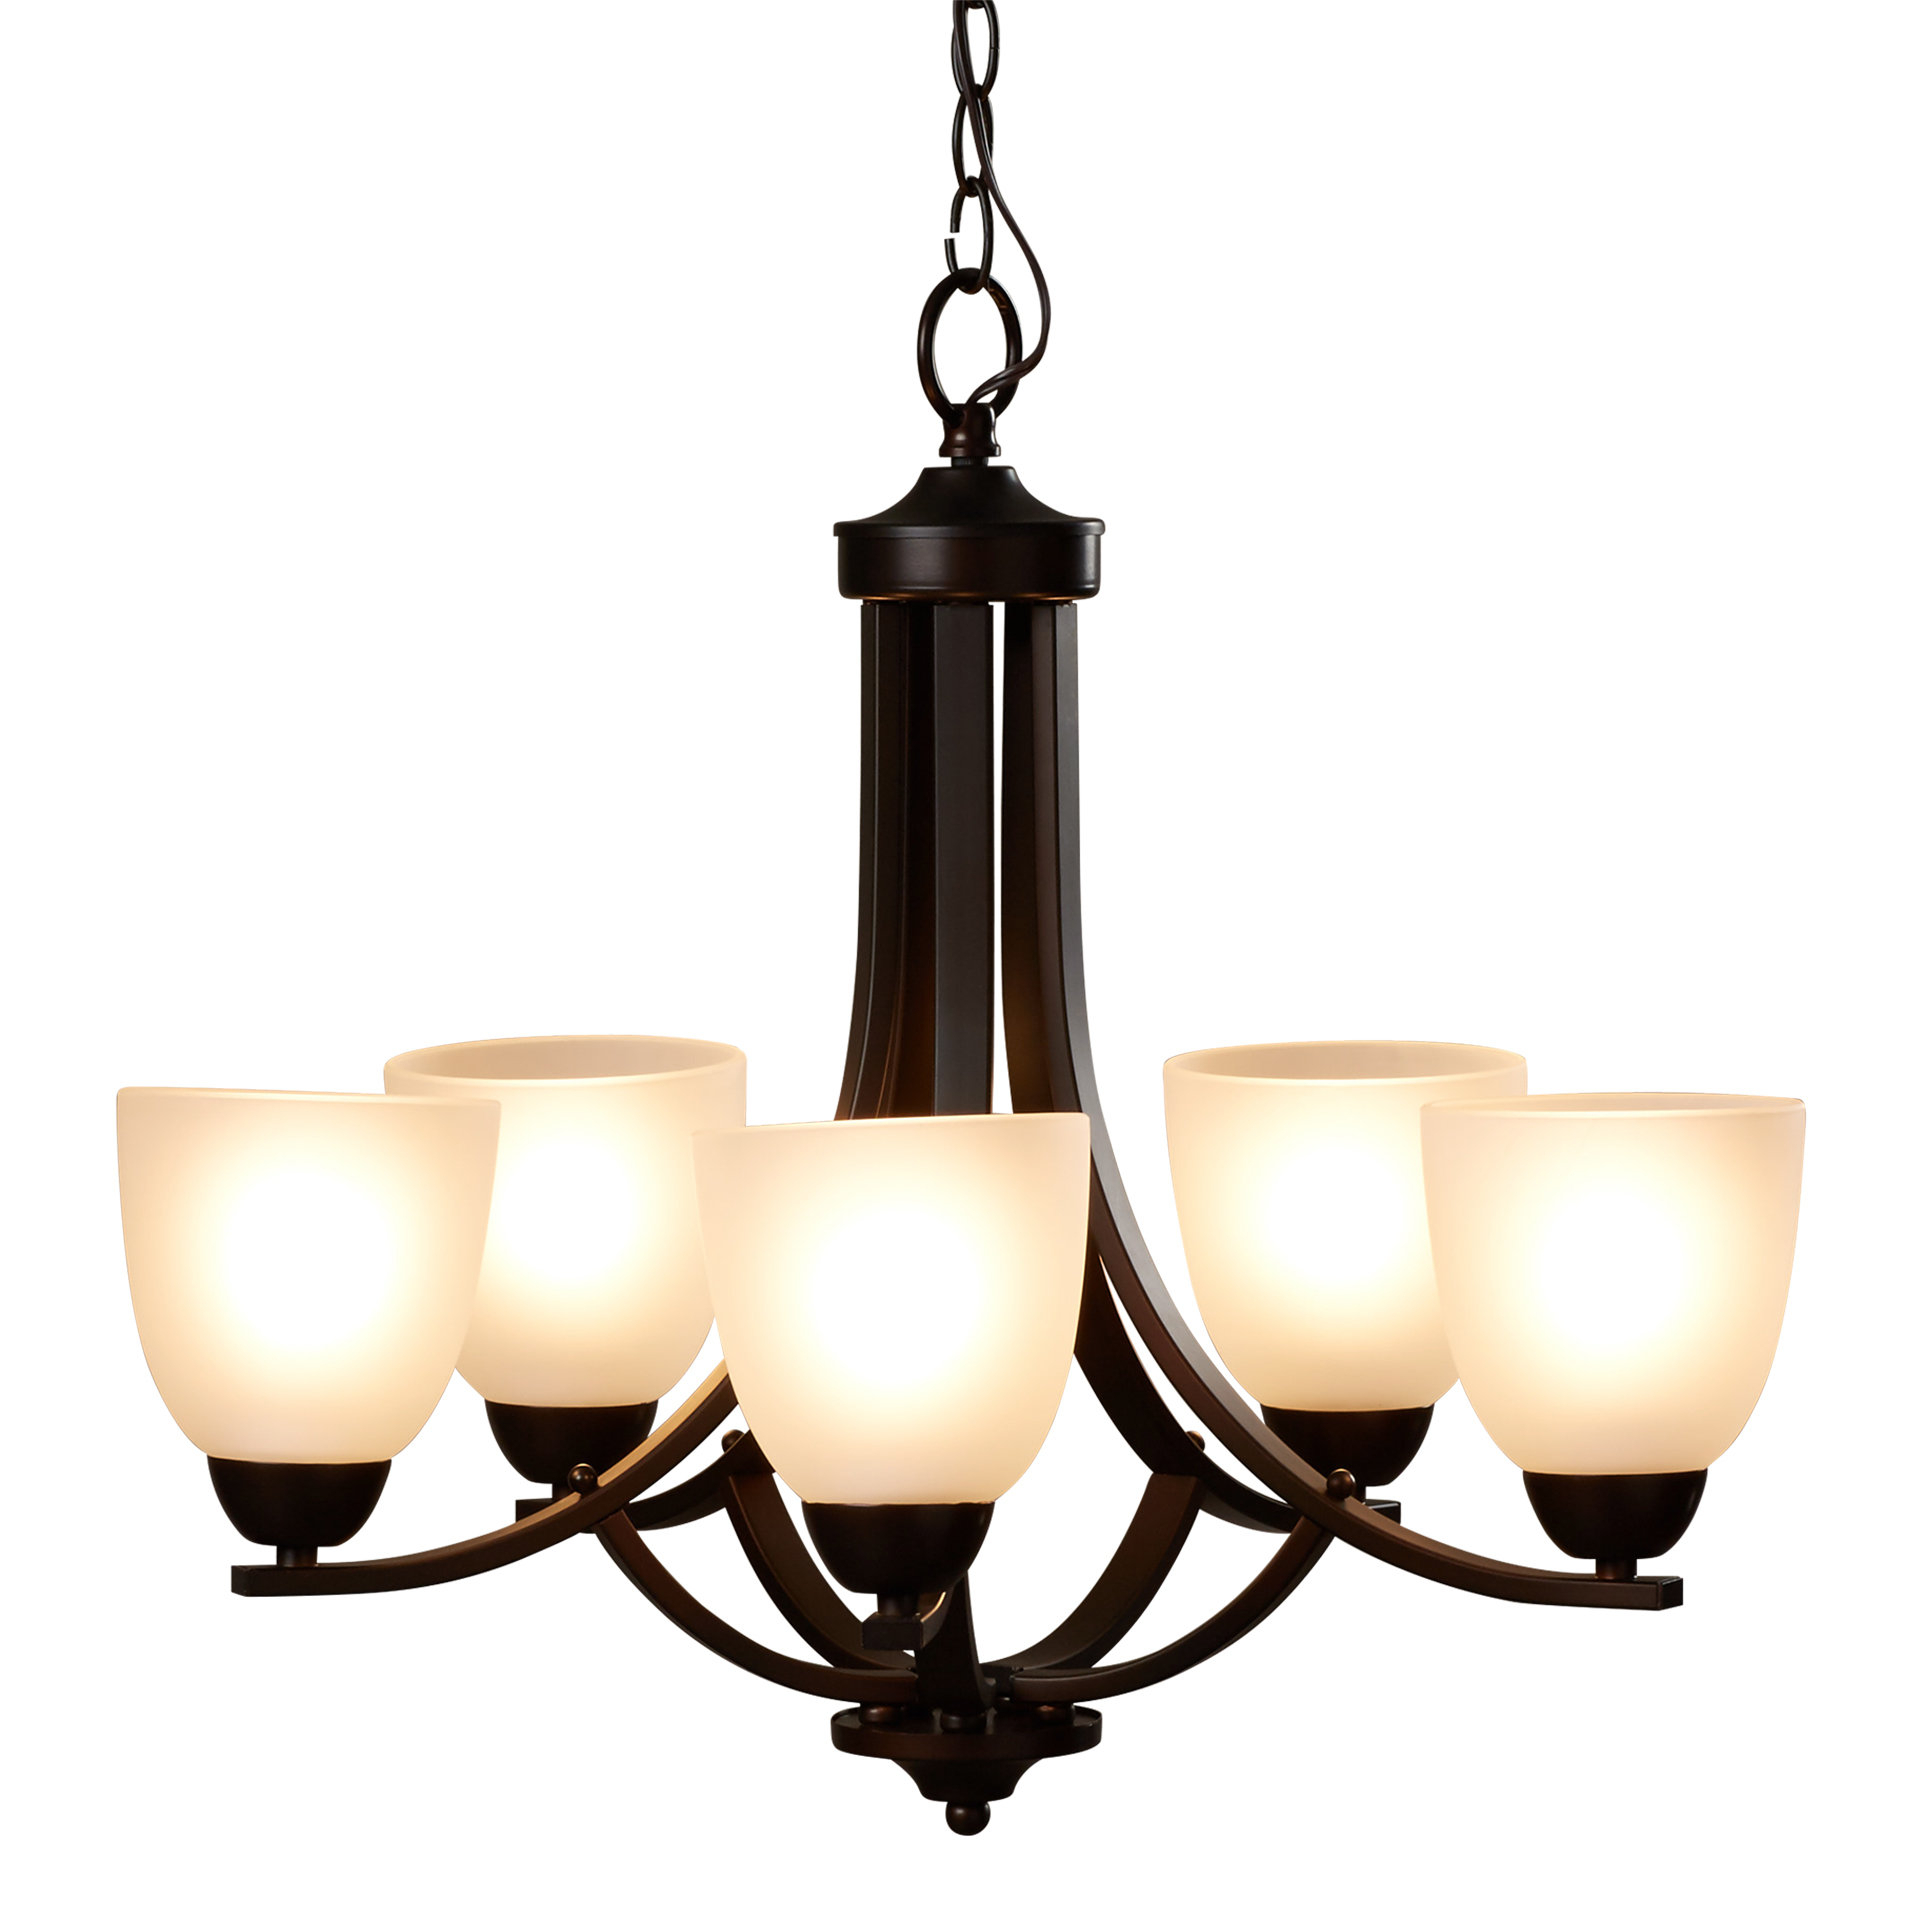 Hayden 5 Light Shaded Chandelier With Newent 5 Light Shaded Chandeliers (View 3 of 30)